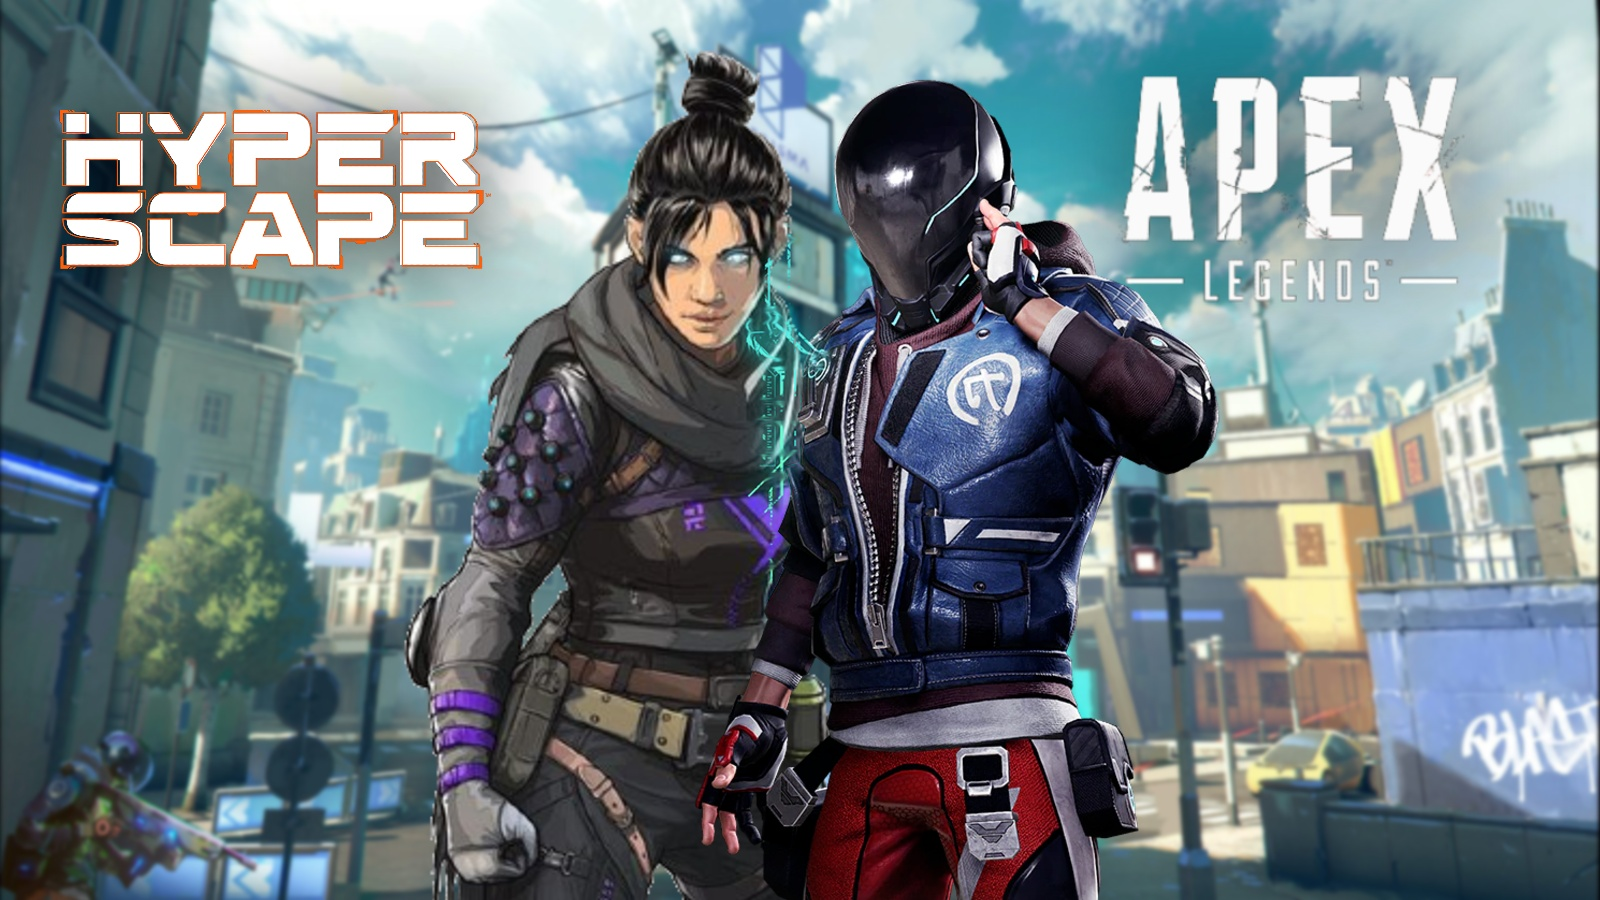 Hyper Scape Apex Legends crossover